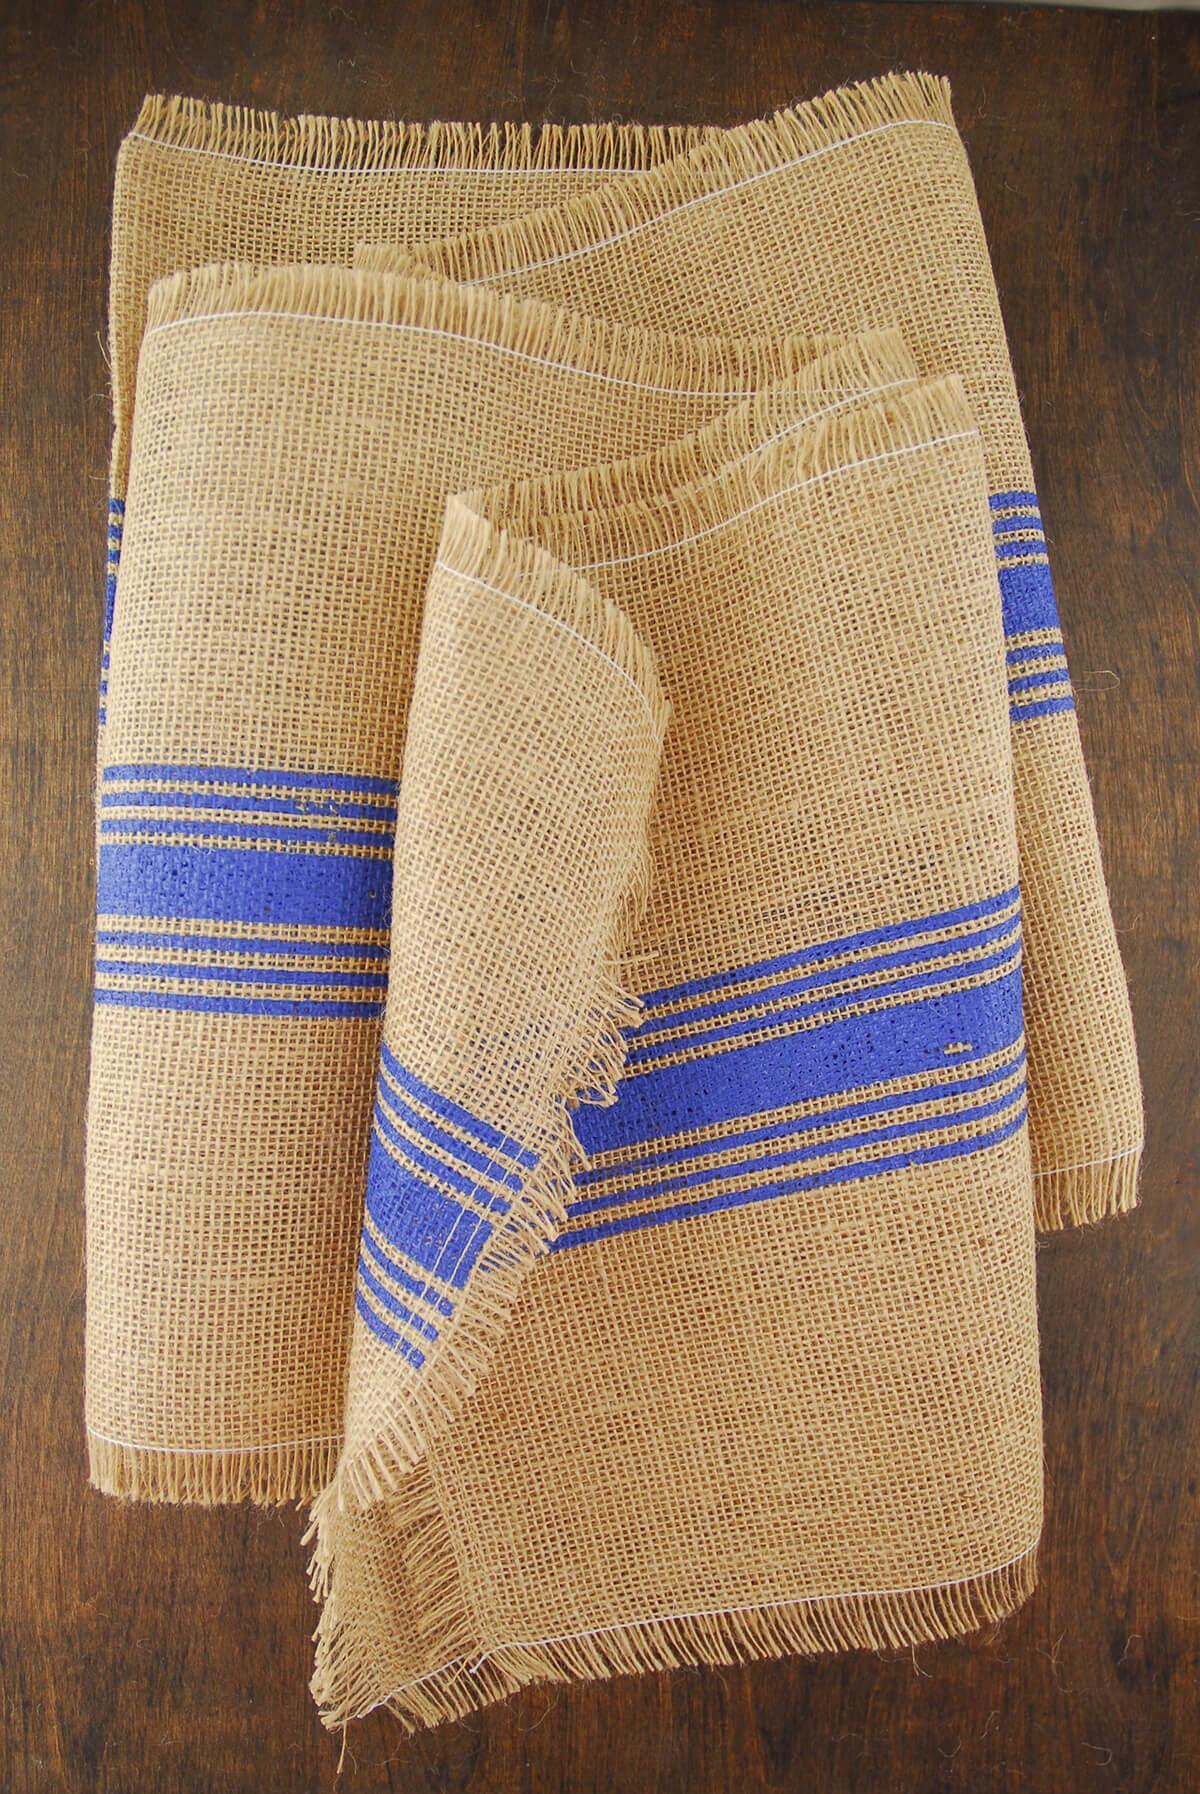 blue striped burlap runner 12 5 x 108